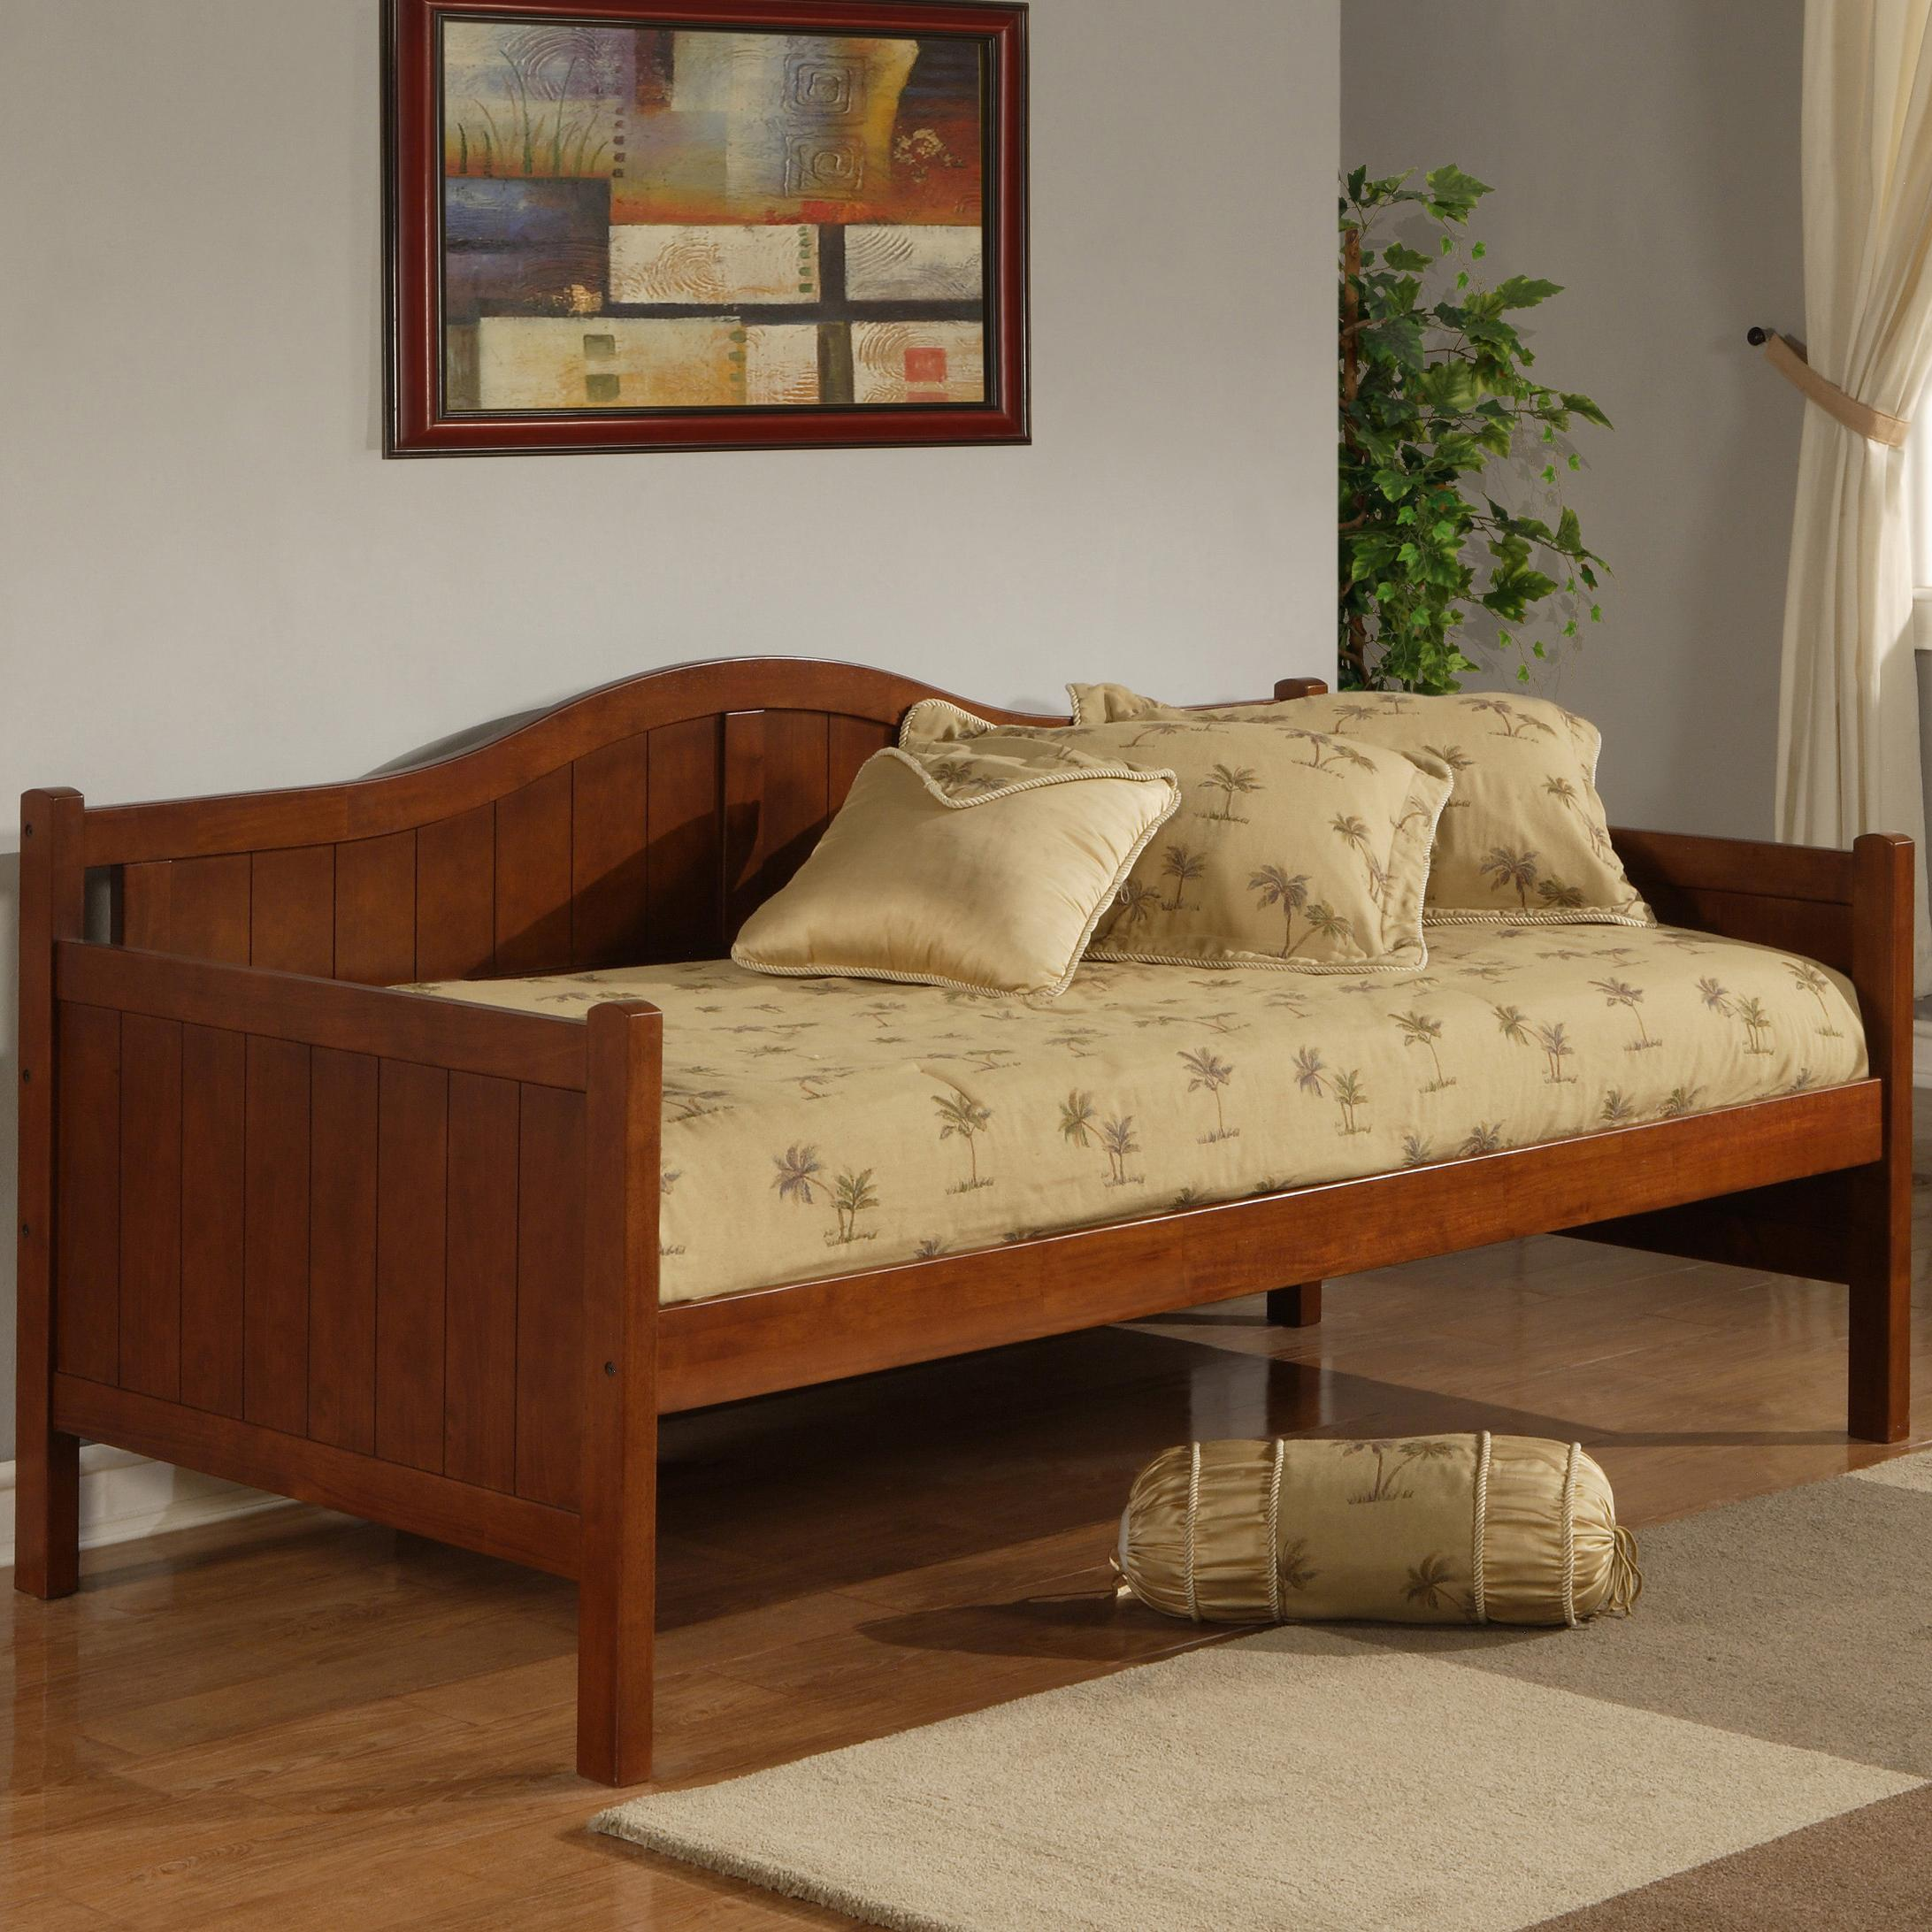 Hillsdale Daybeds Twin Staci Daybed - Item Number: 1526DB